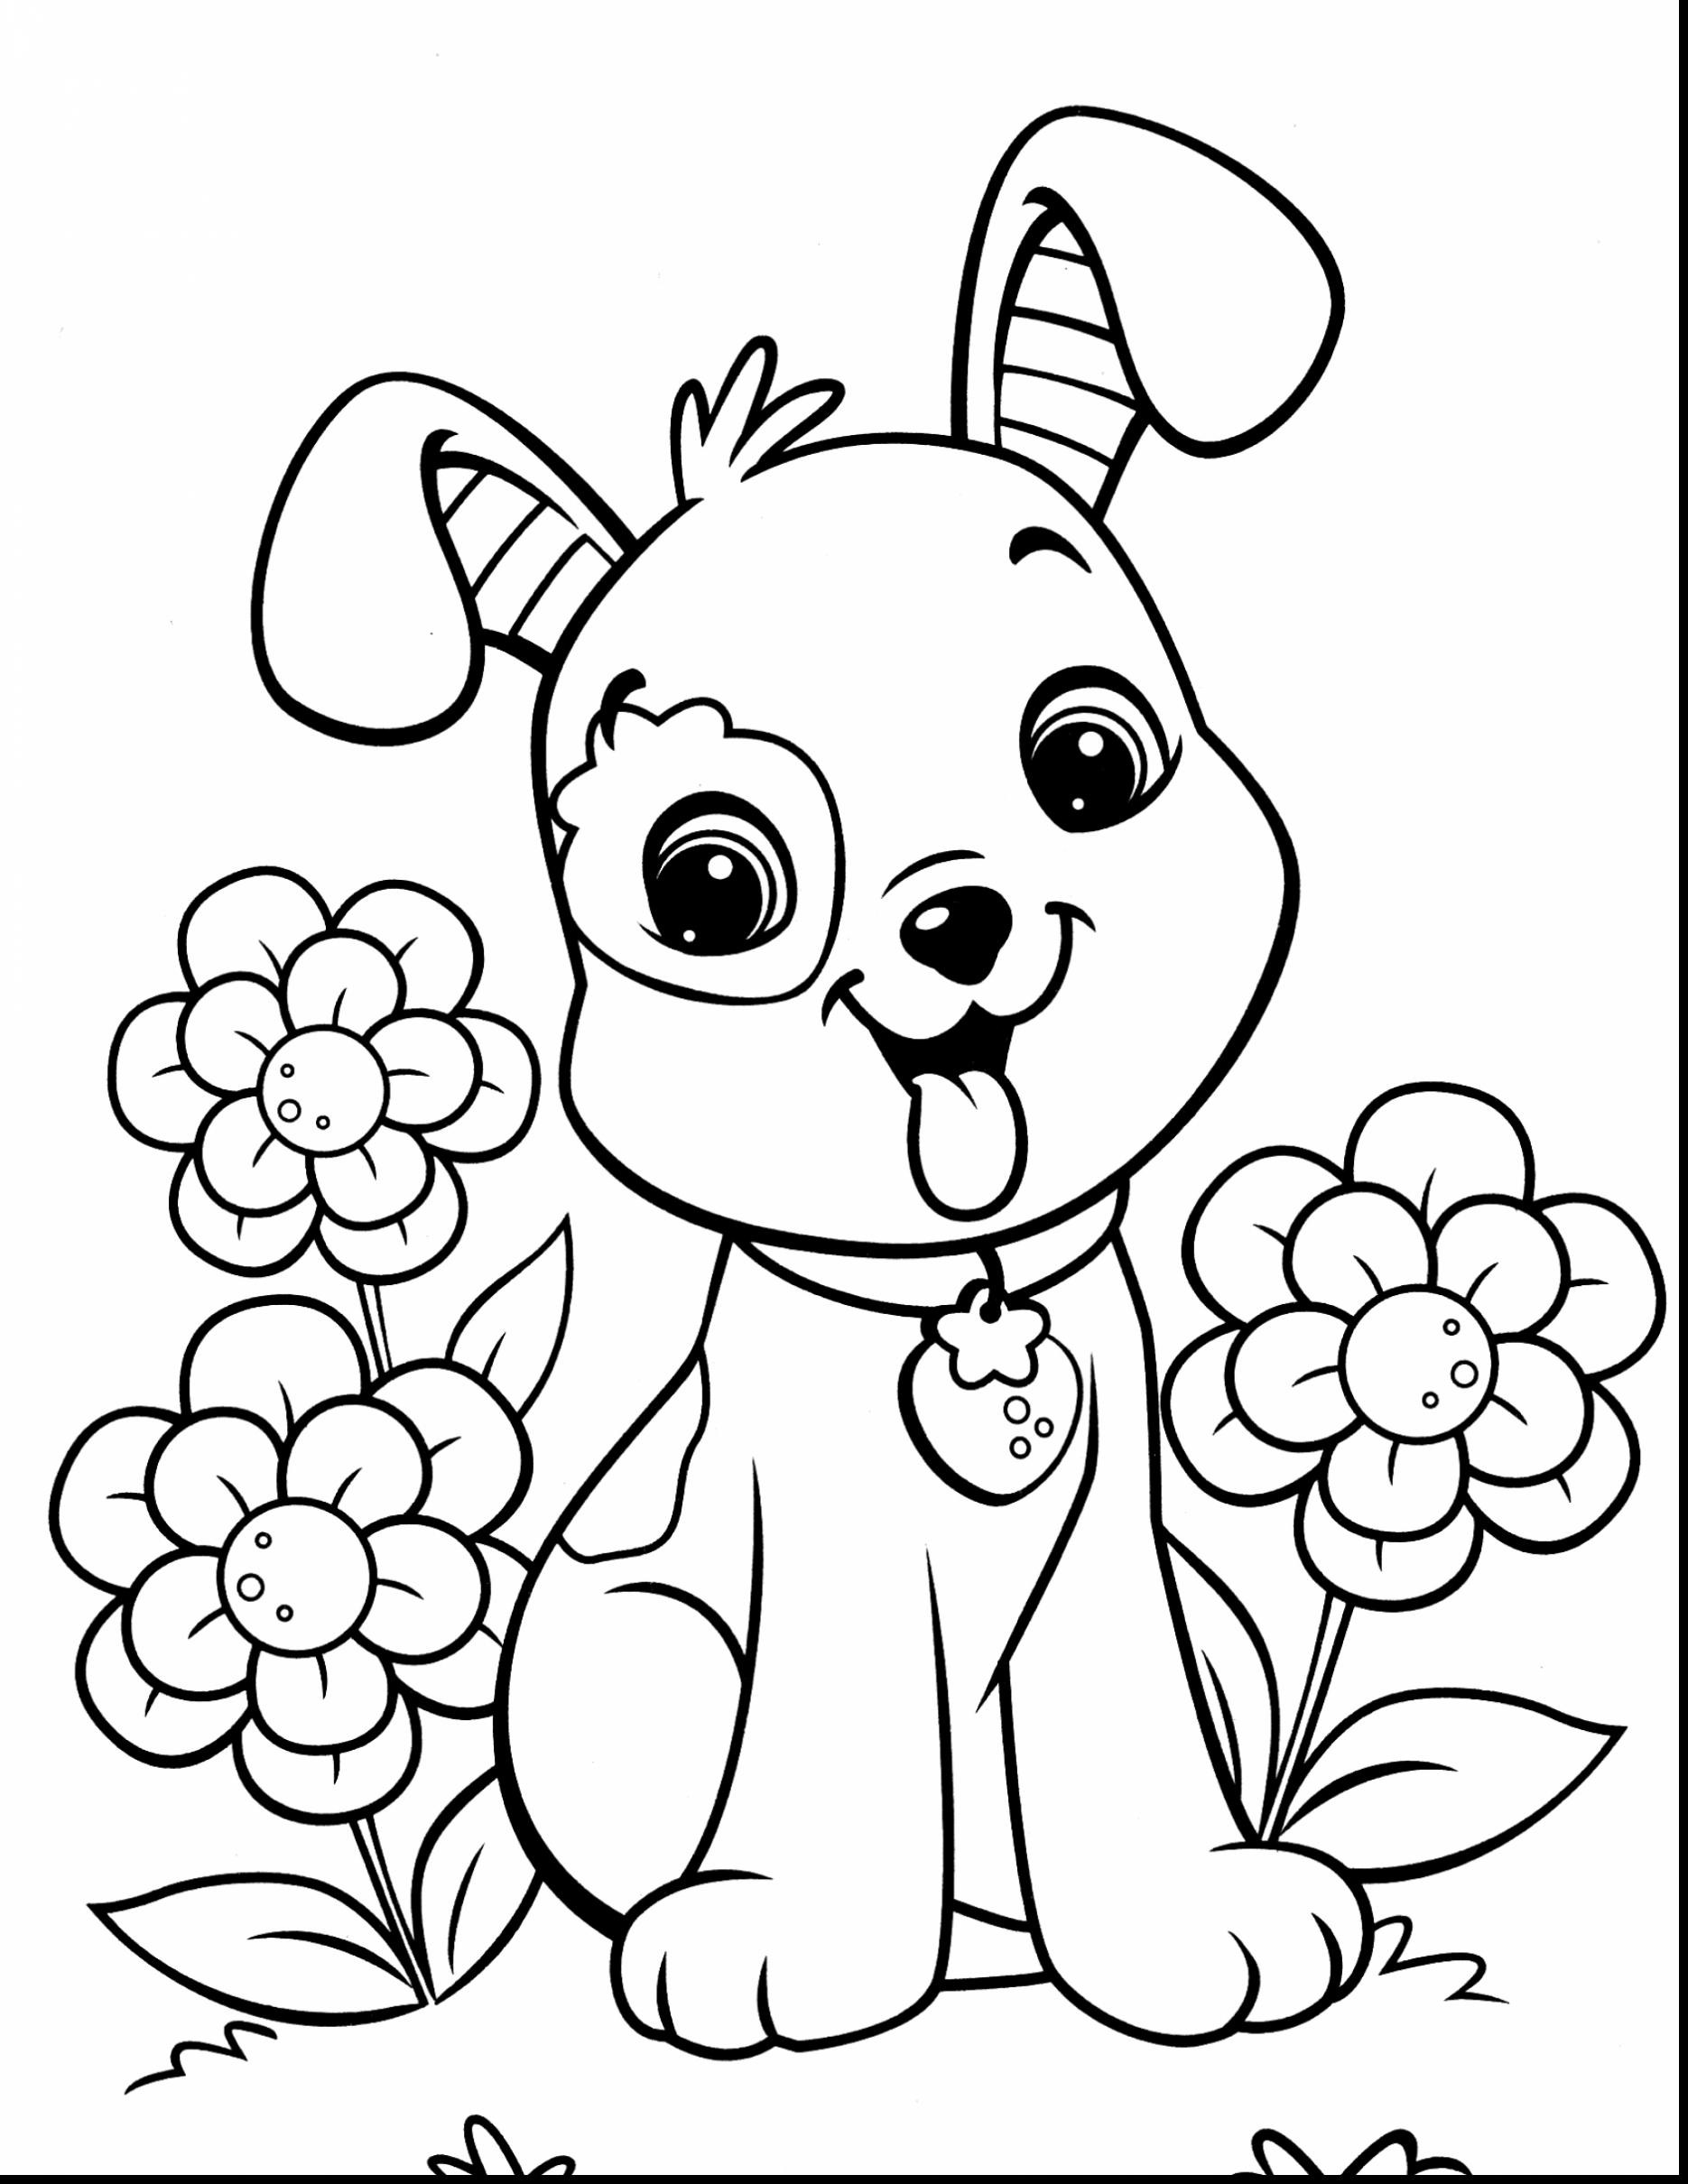 1870x2420 Catdog Coloring Pages For Kids Inspirational Peaceful Design Dogs